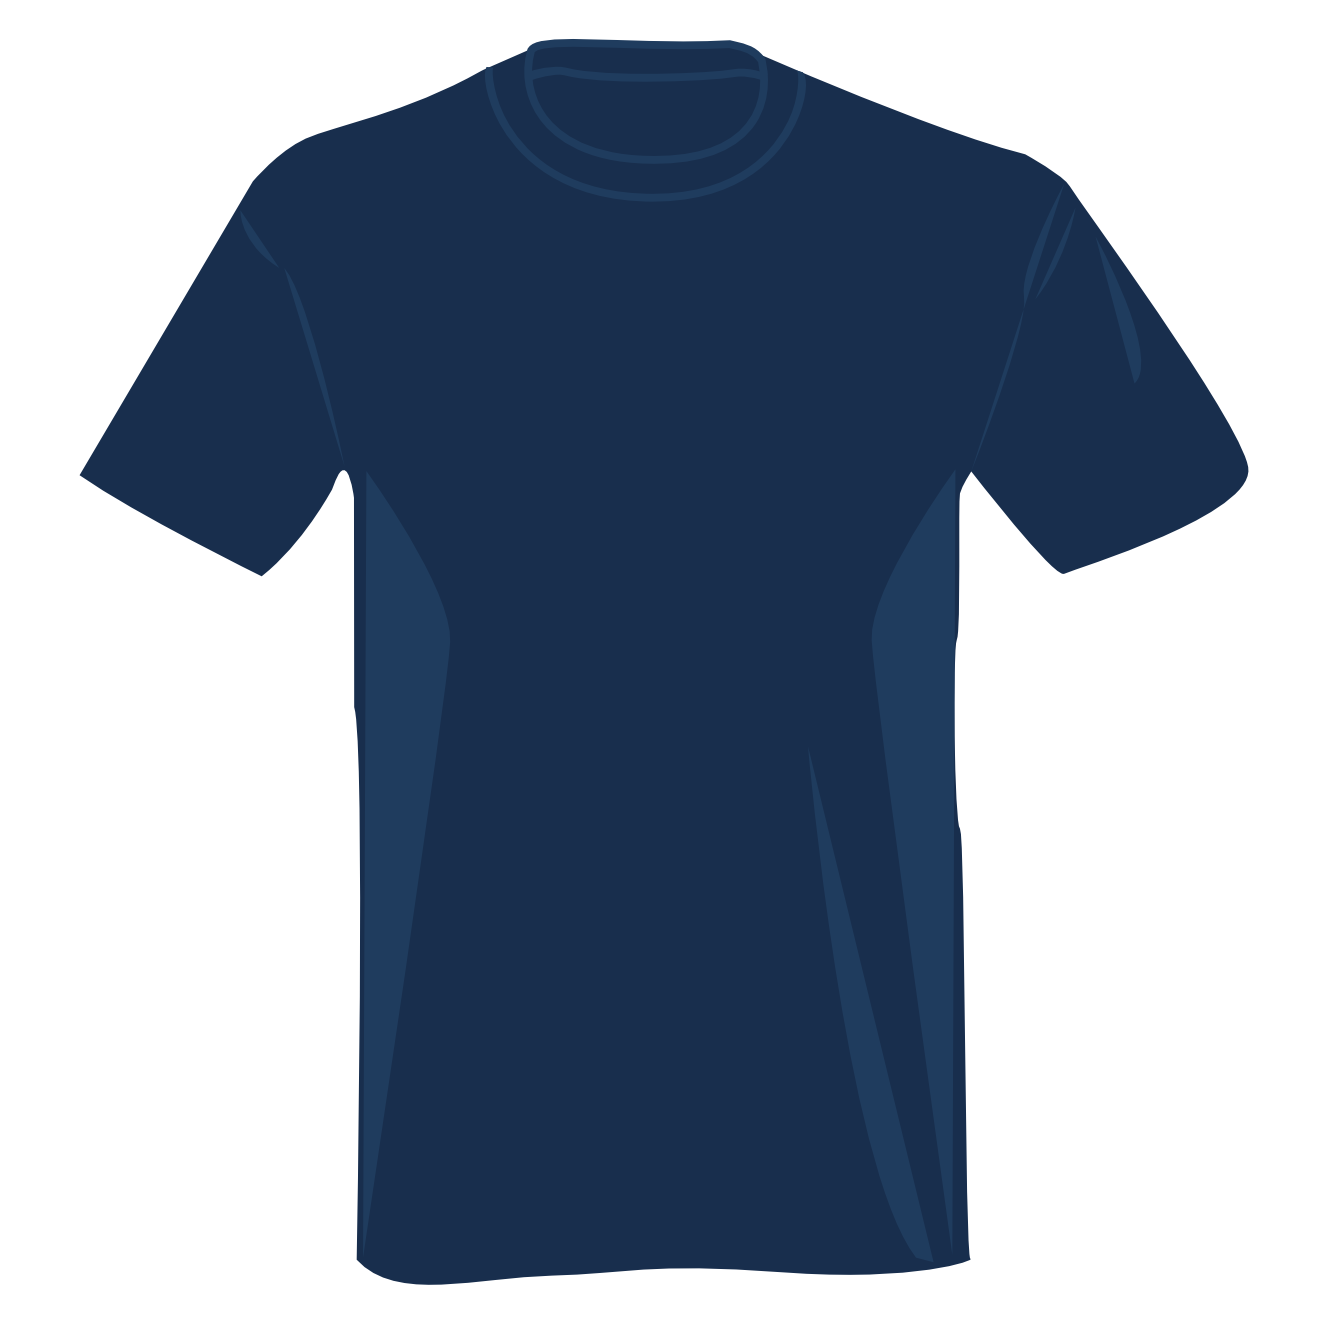 Free T Shirt Clip Art Pictures.